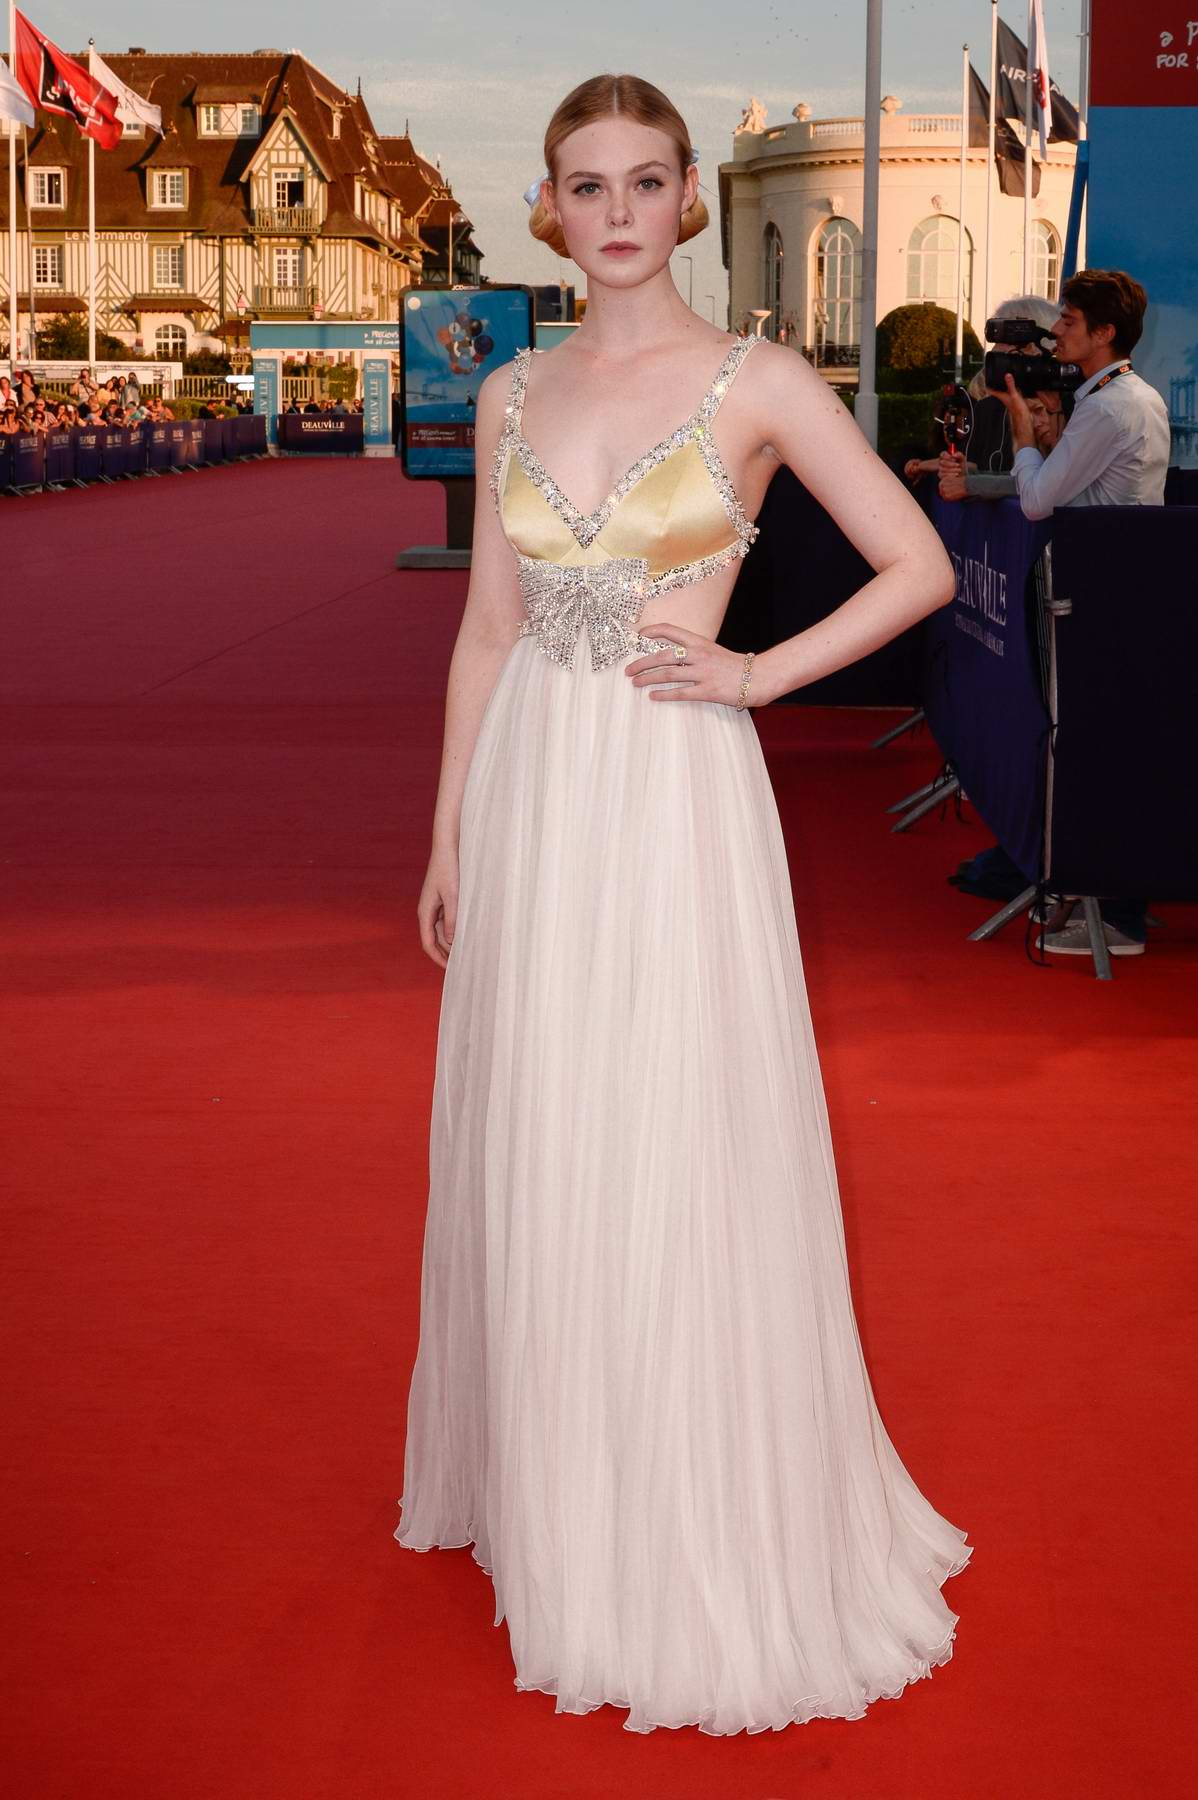 Elle Fanning attends 'Galveston' premiere during the 44th Deauville American Film Festival in Deauville, France